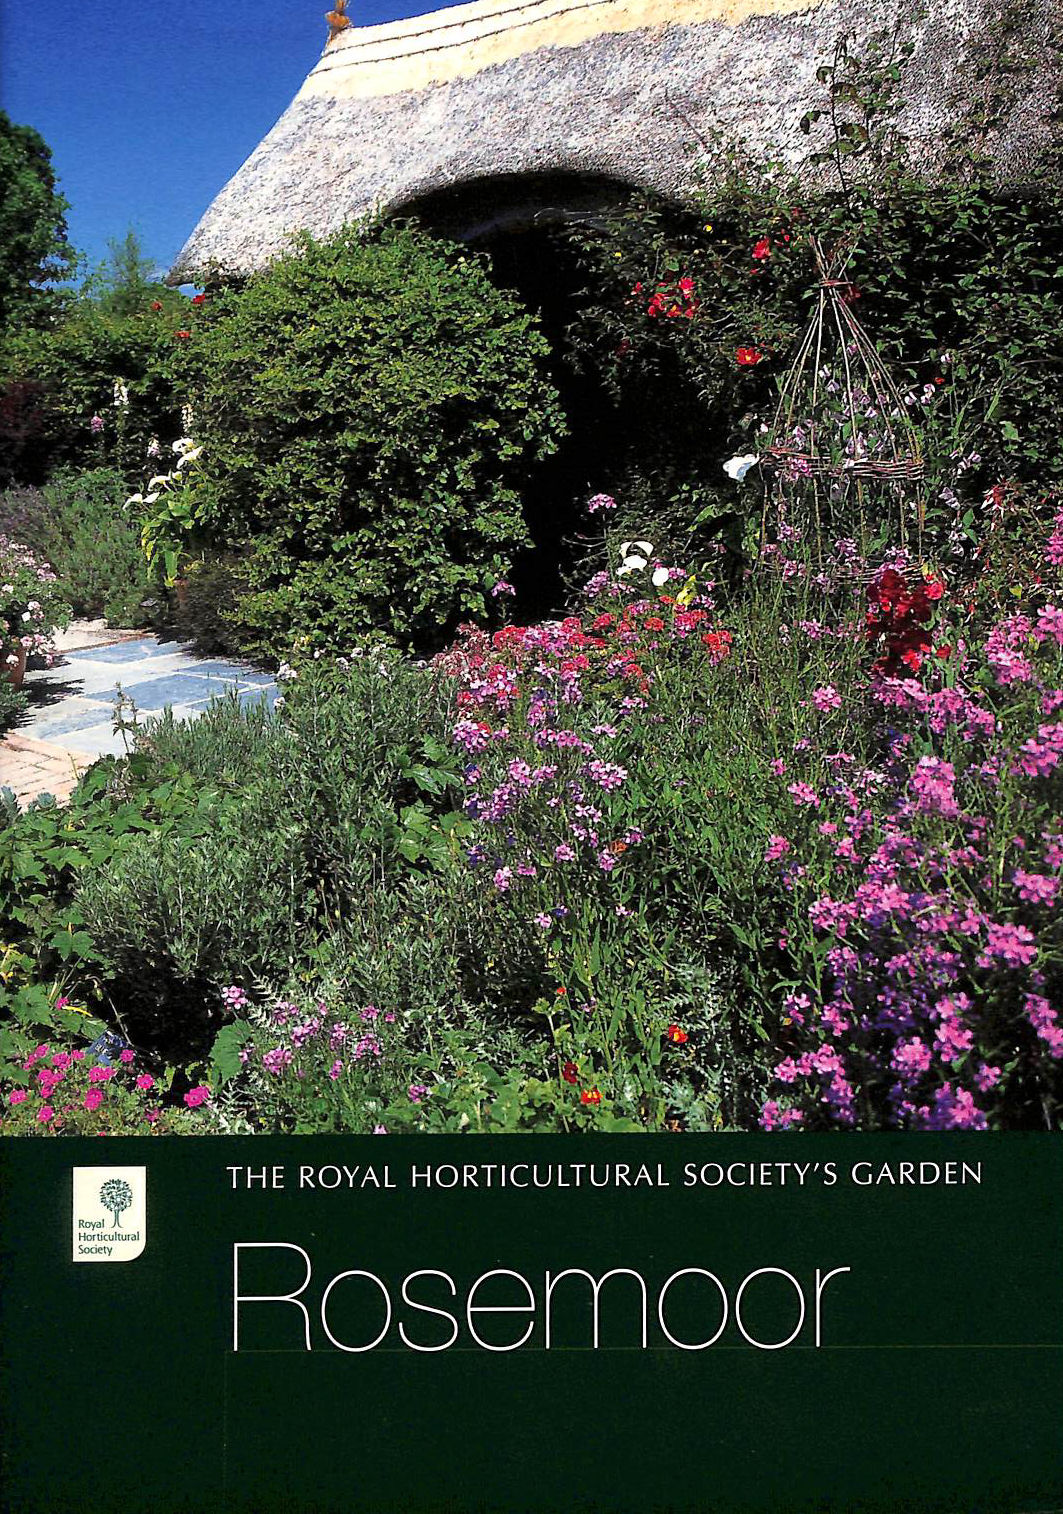 Image for Rosemoor, The Royal Horticultural Society's Garden